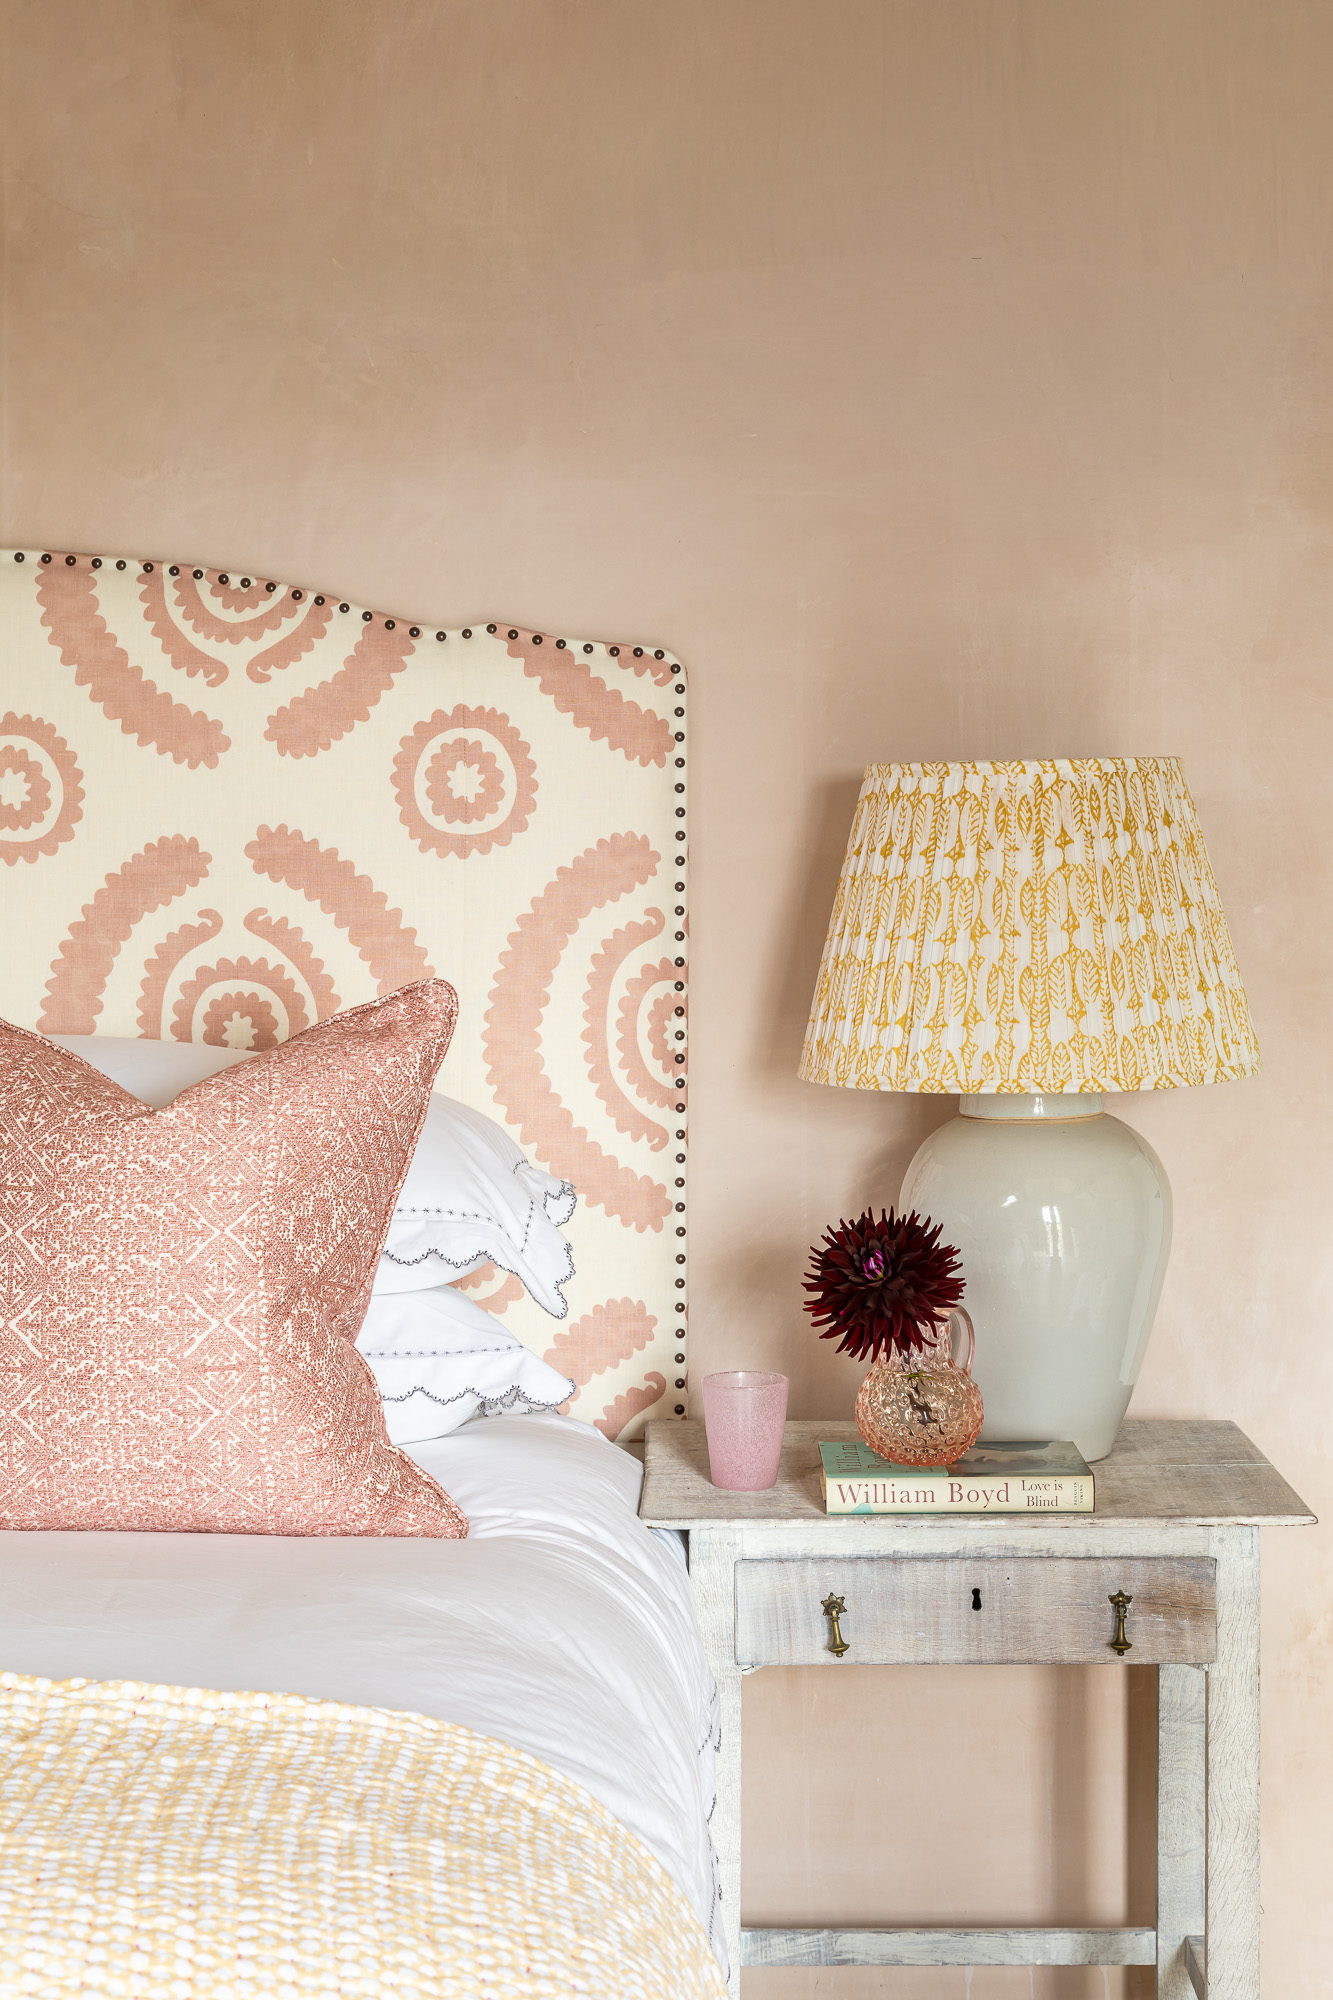 jonathan bond, bedroom pink patterned scatter cushion bedside lamp marnhull